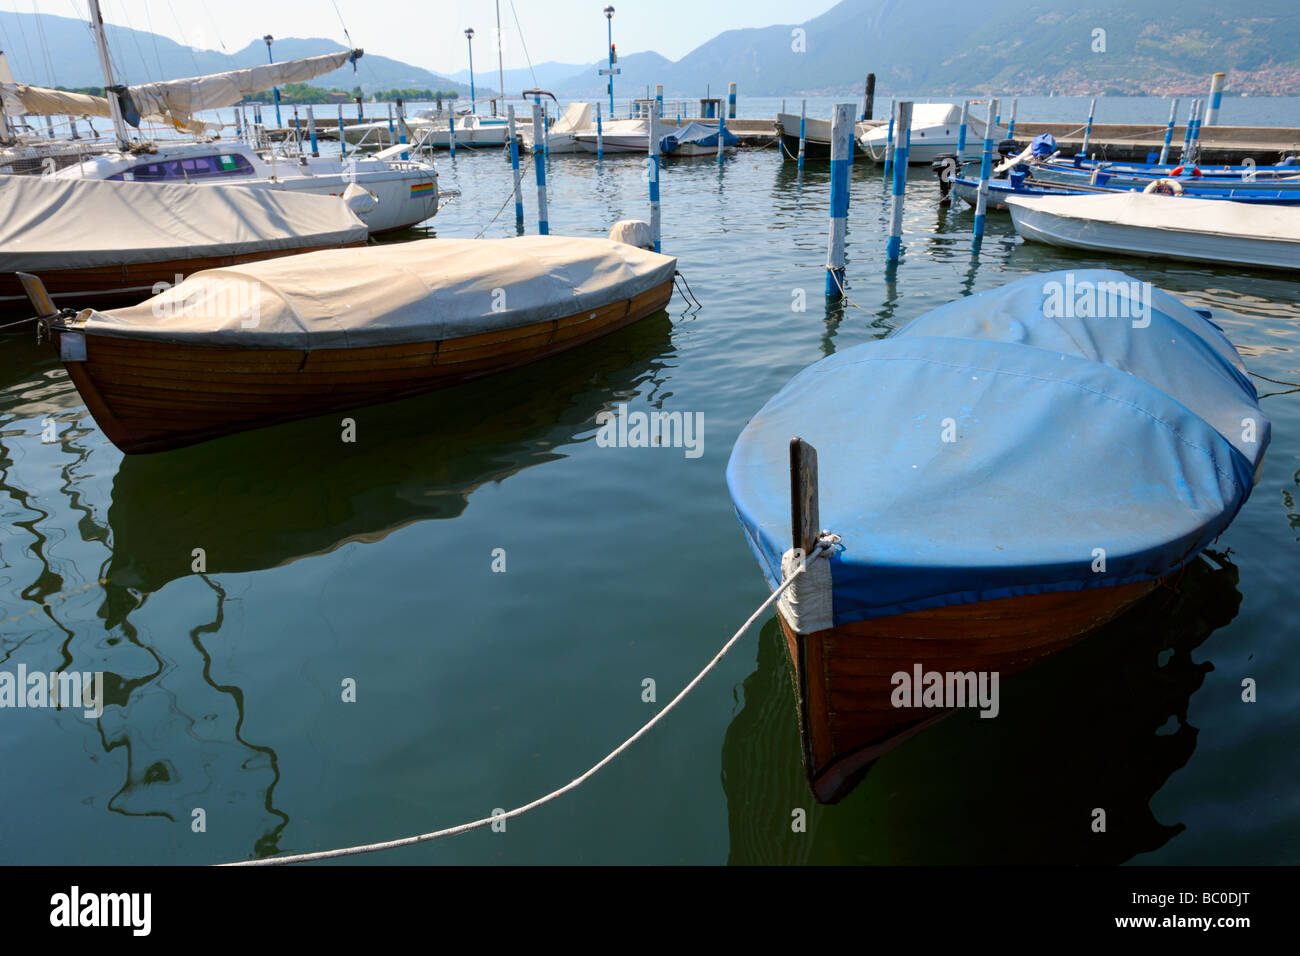 Covered boats moored in the marina at Iseo Brescia Lombardy Italy protected from the weather by tarpaulin - Stock Image